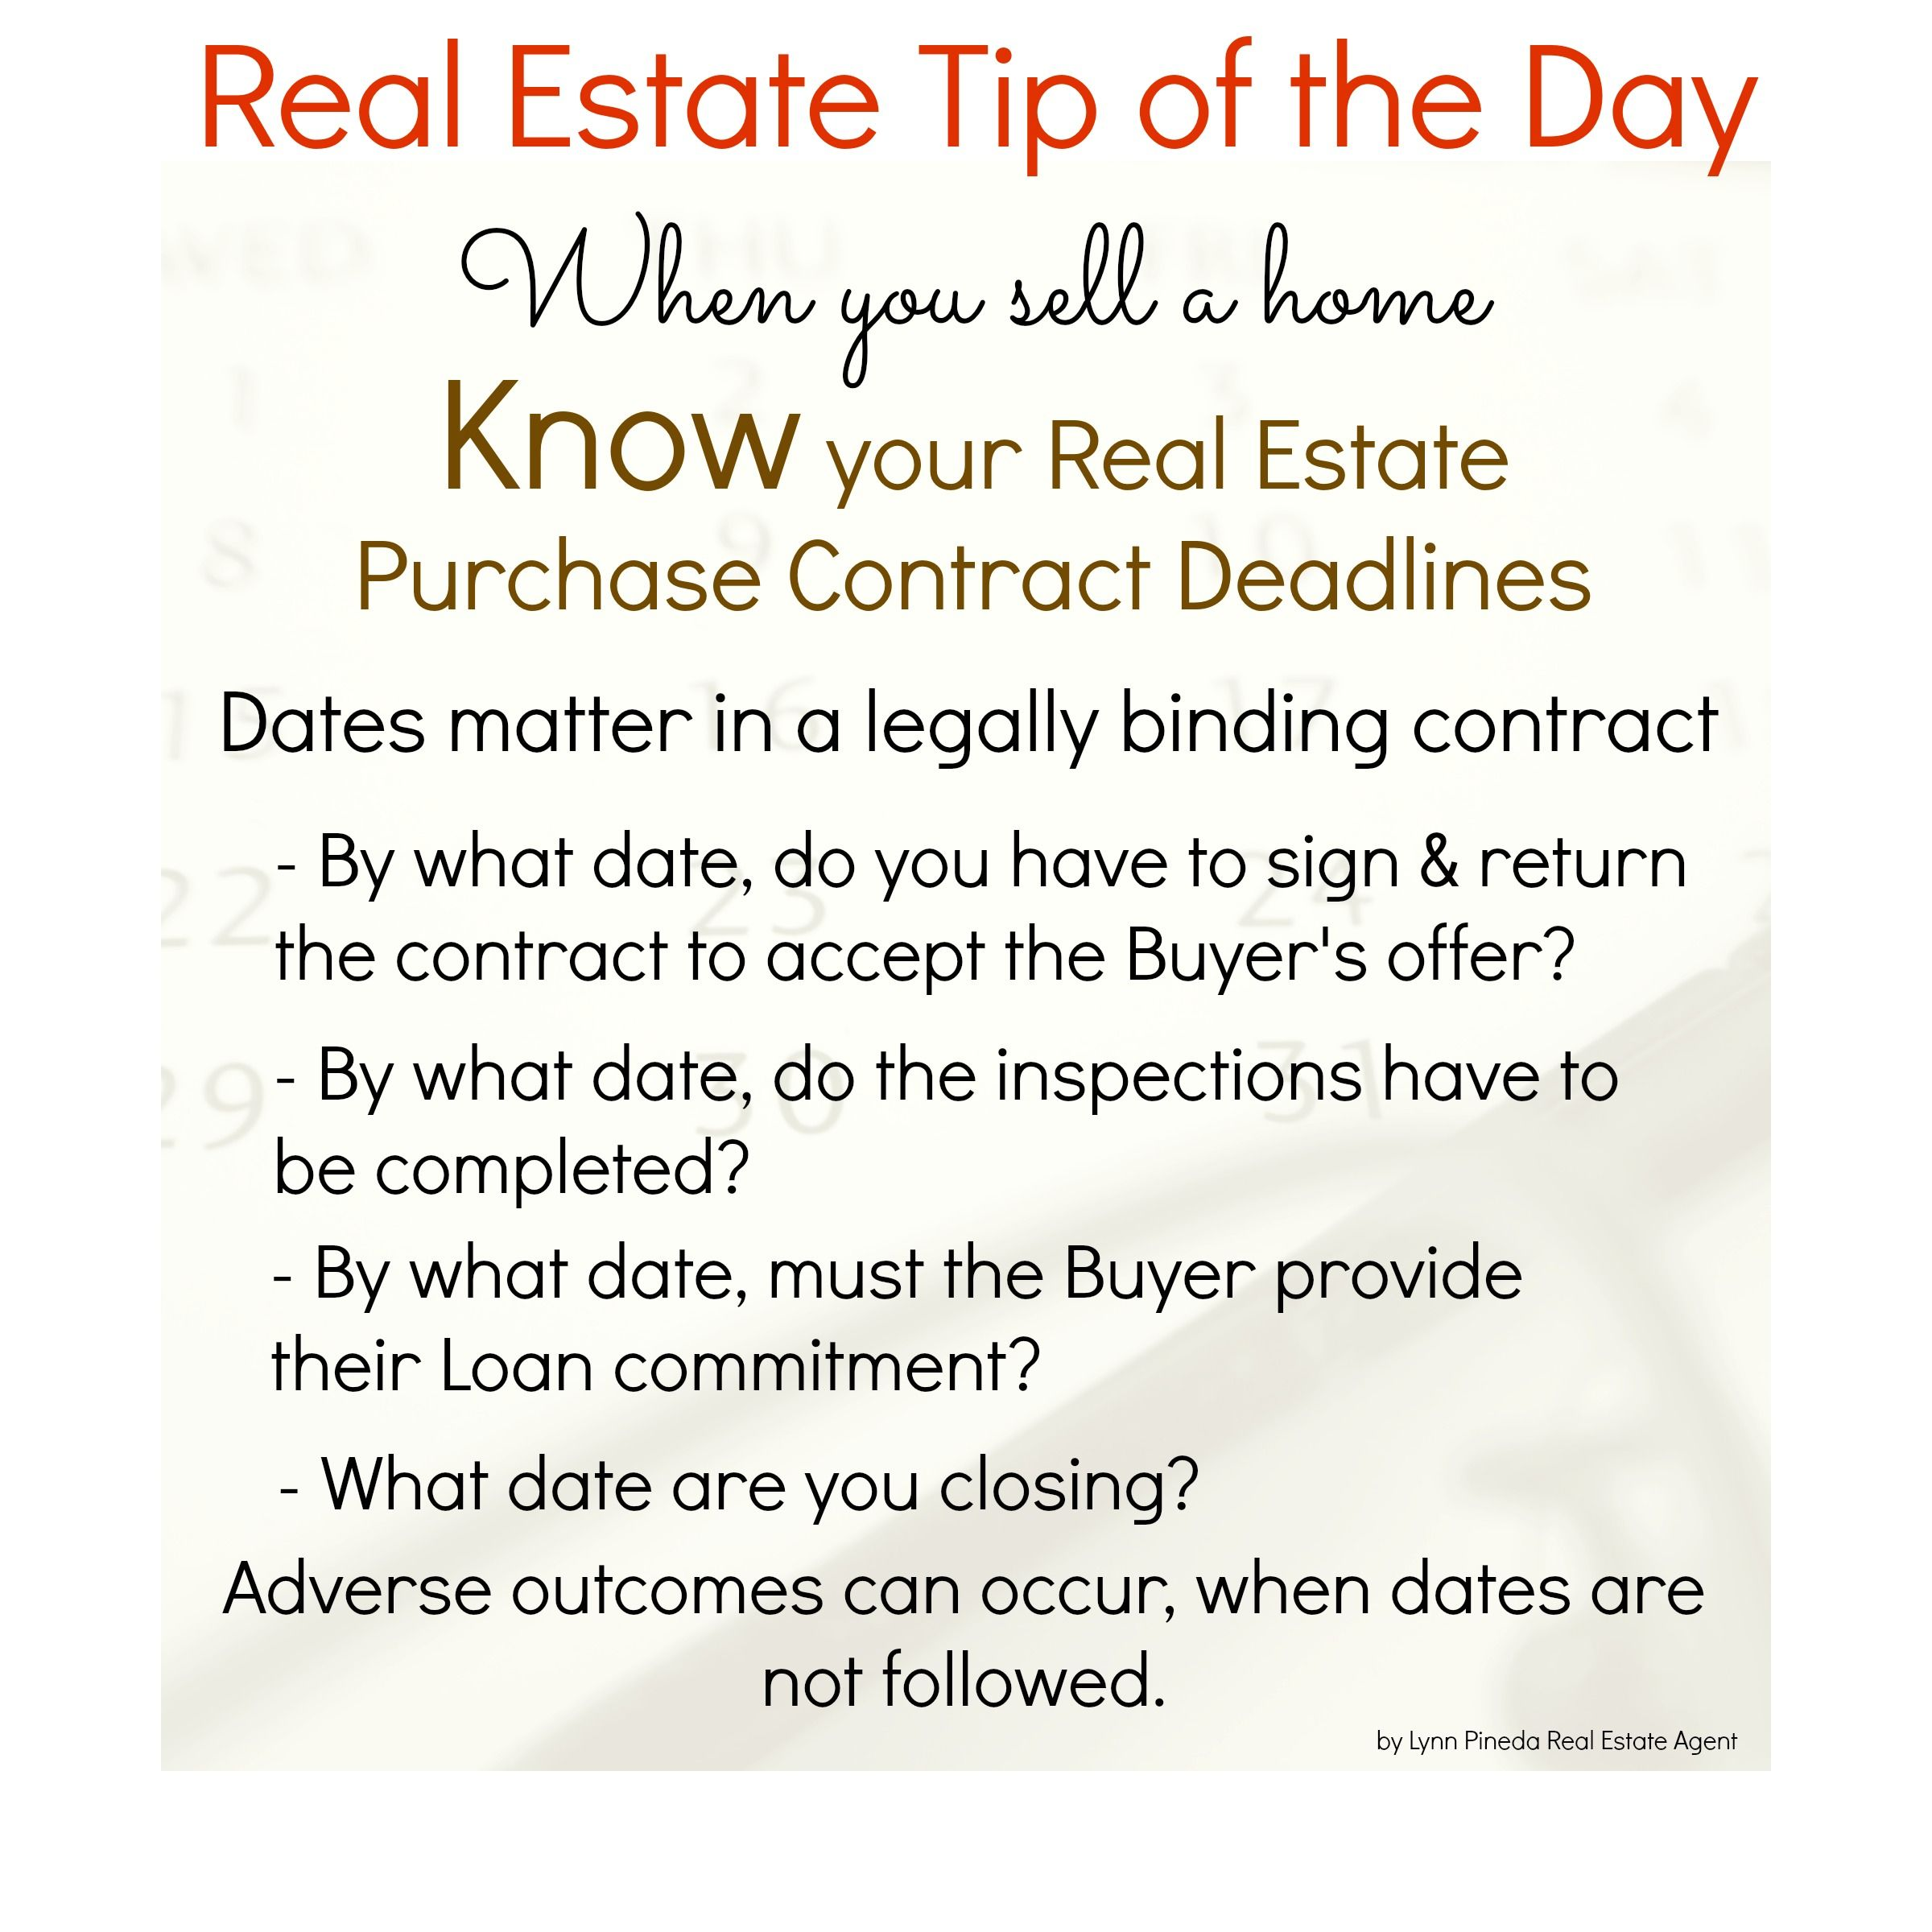 Know Your Real Estate Purchase Contract Deadlines When You Sell A